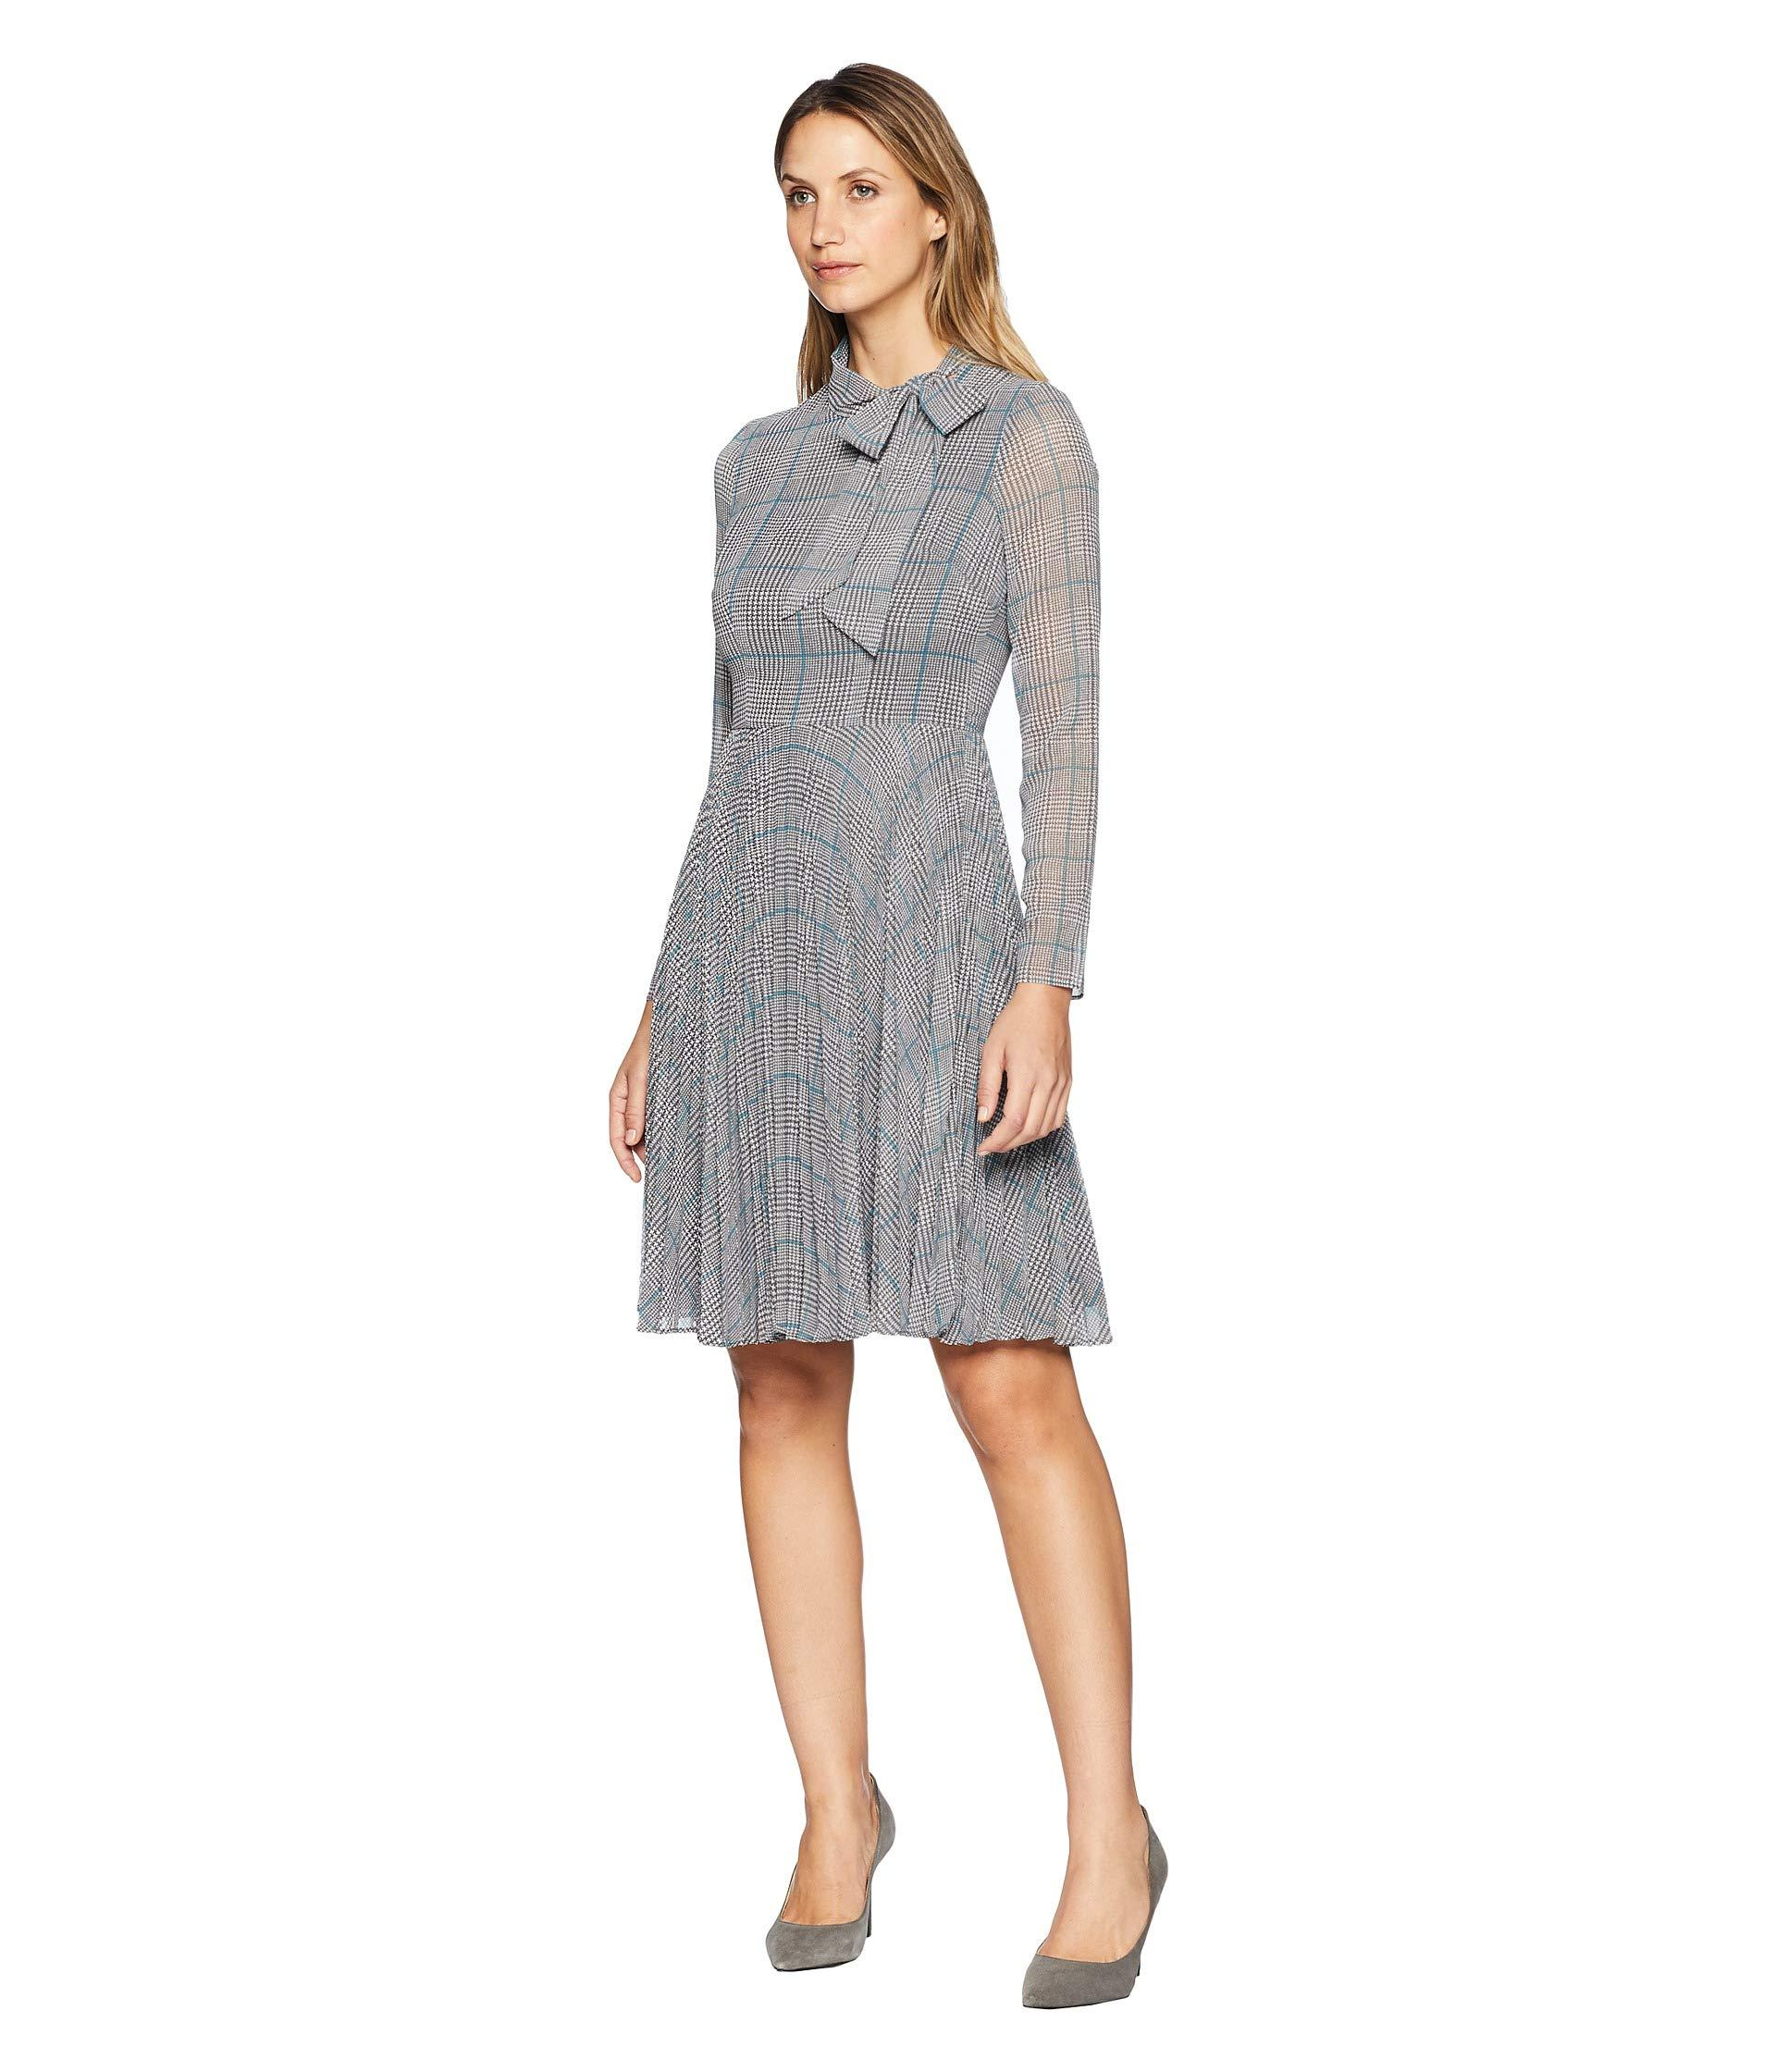 f2b5e0d38e1a Lyst - Maggy London Plaid Chiffon Side Neck Bow Tie Pleated Fit And Flare  Dress in Gray